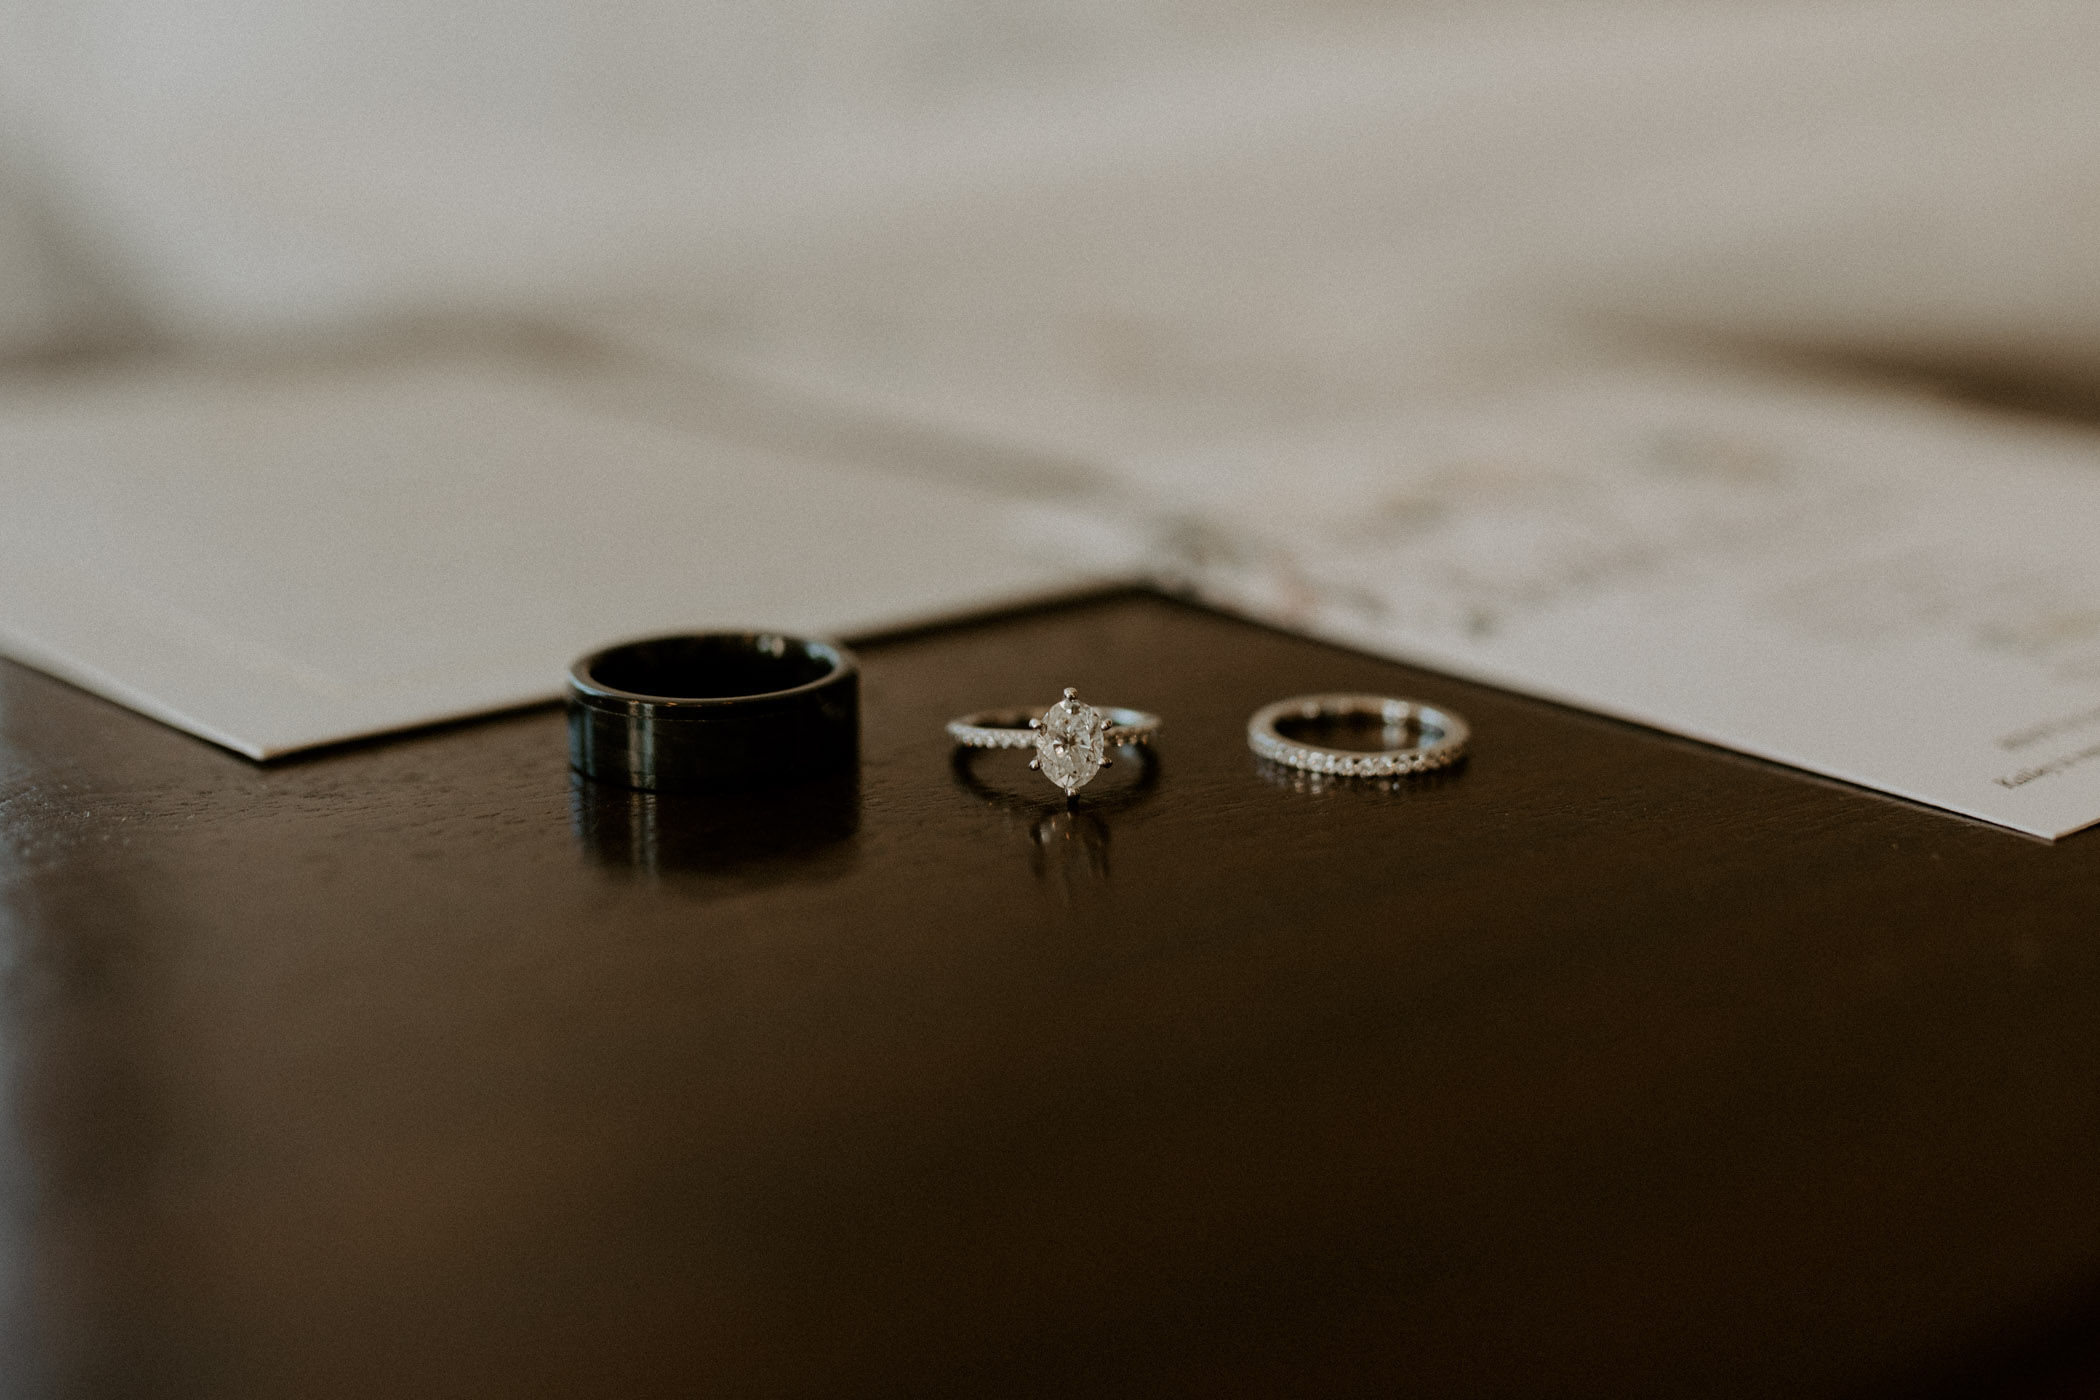 Wedding rings detail photo on top of stationary